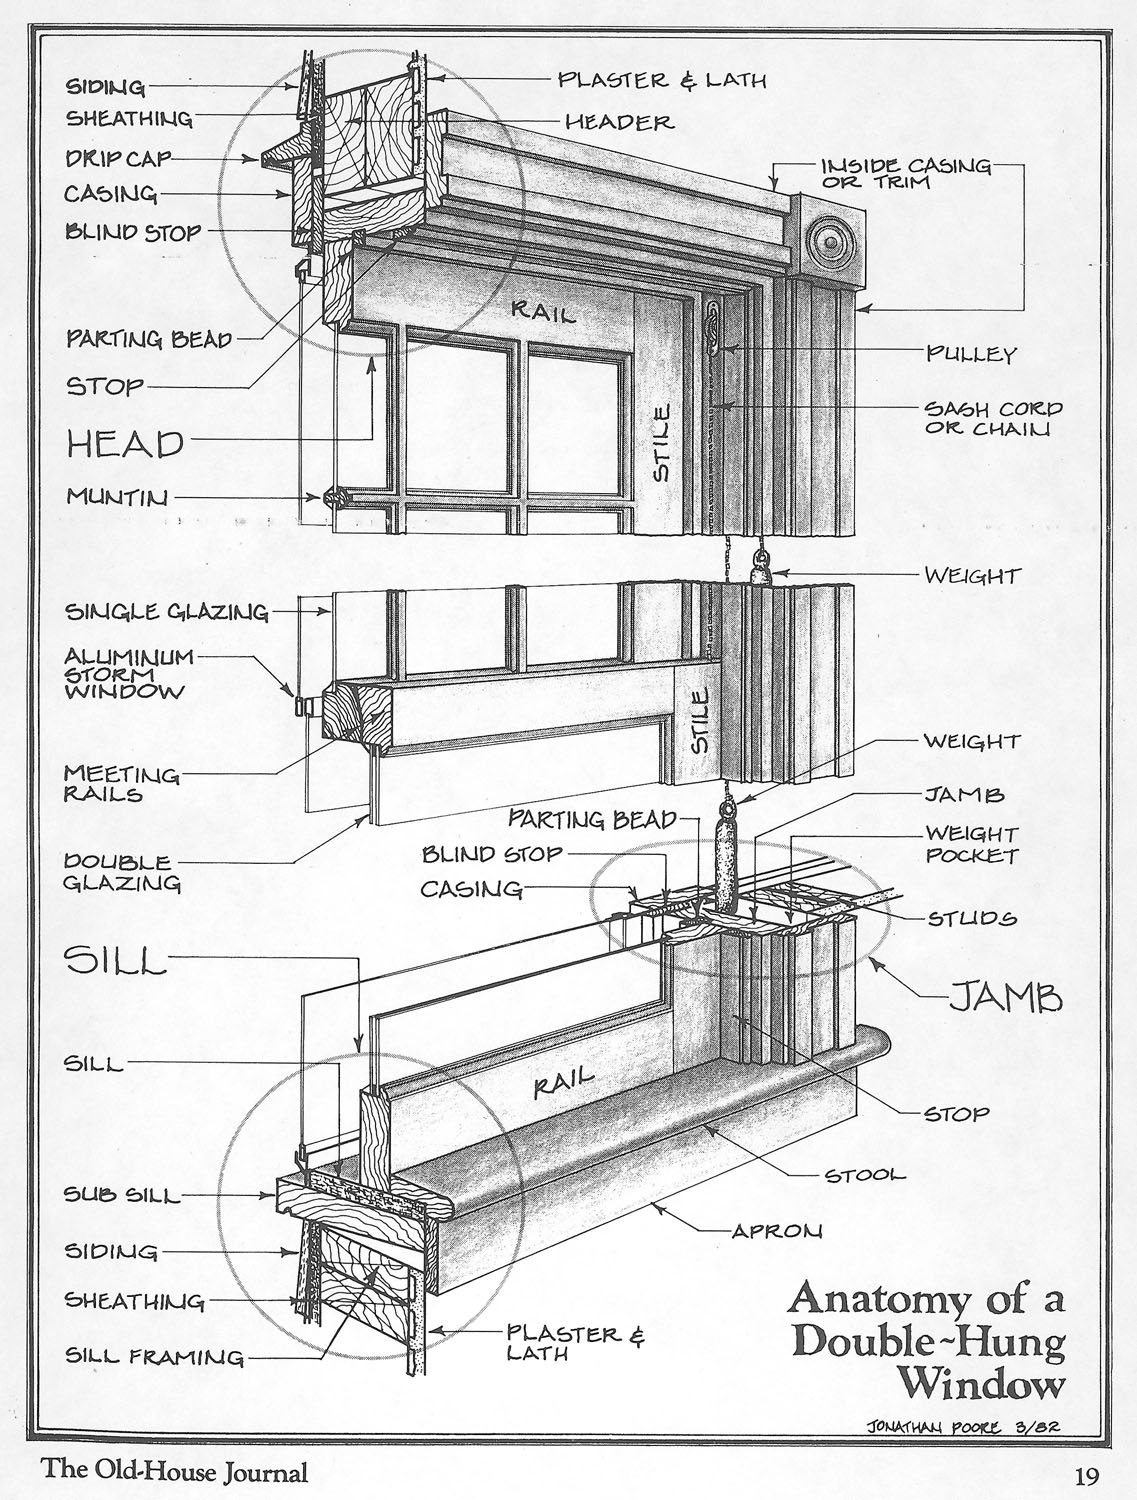 Important components of a window